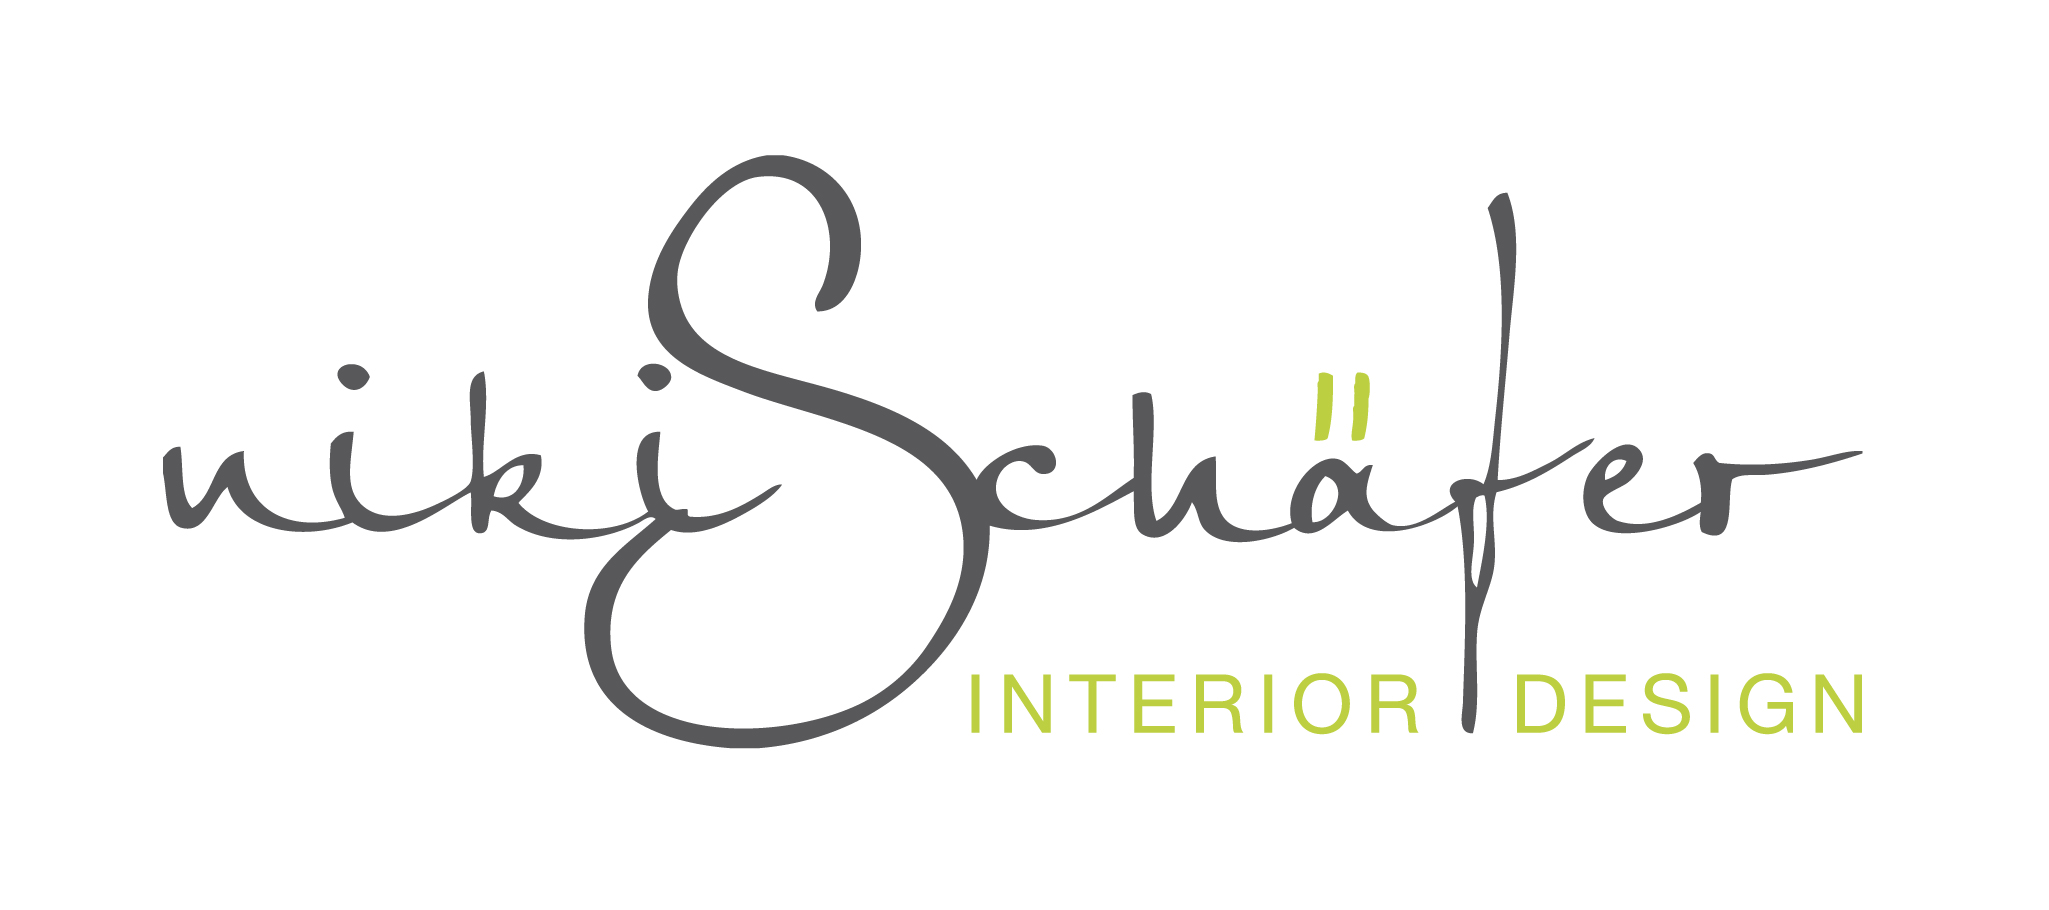 niki schafer interior design logo